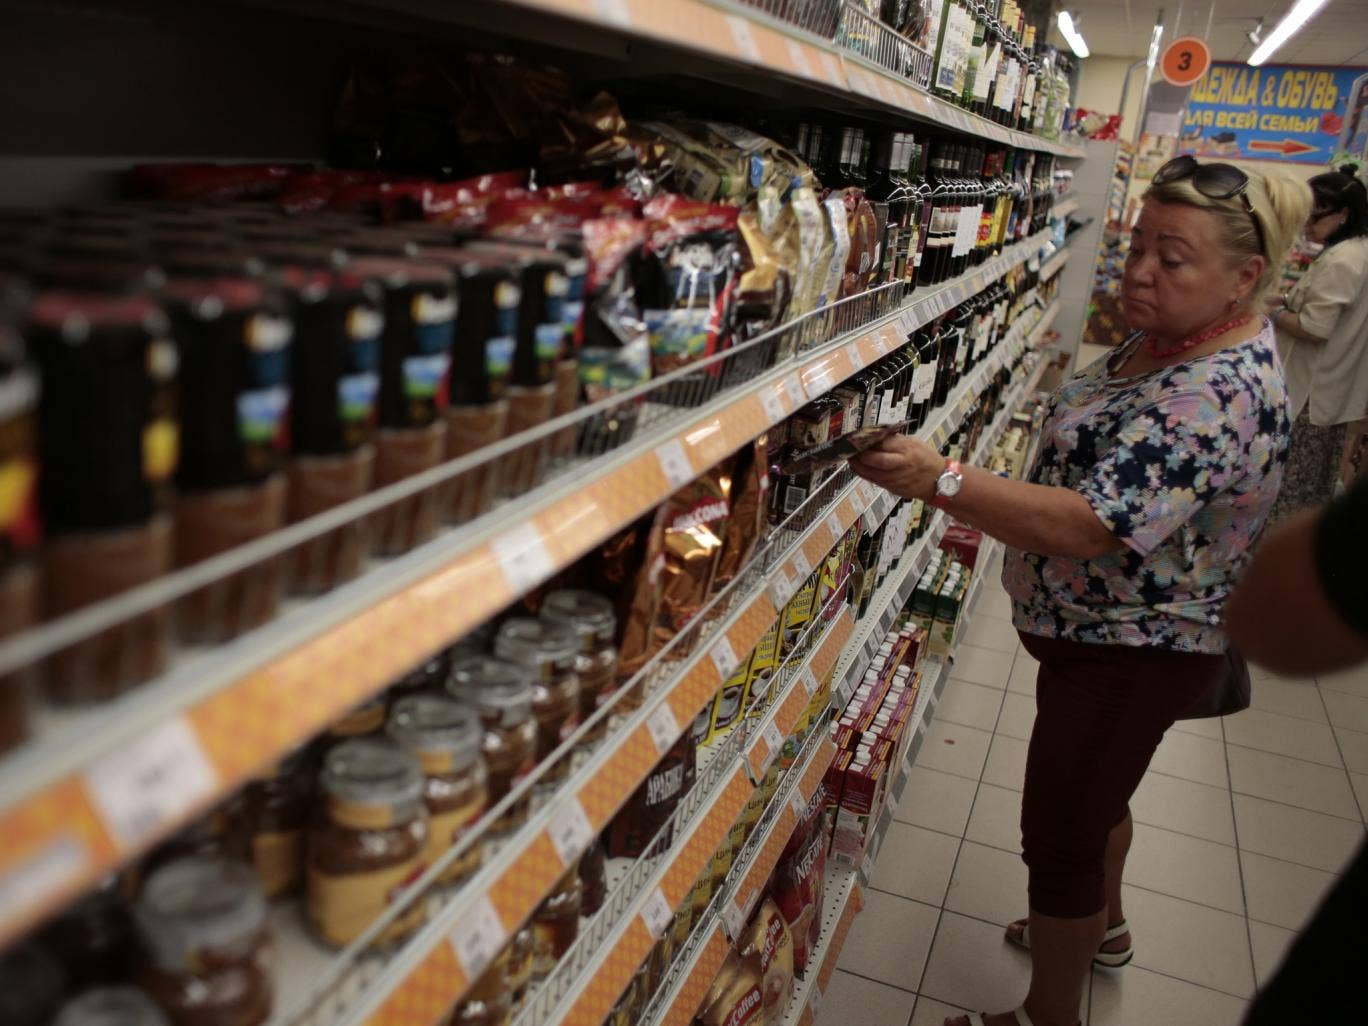 A woman choses sweets at a counter with imported food stuffs at a supermarket in downtown Moscow on Thursday, Aug. 7, 2014